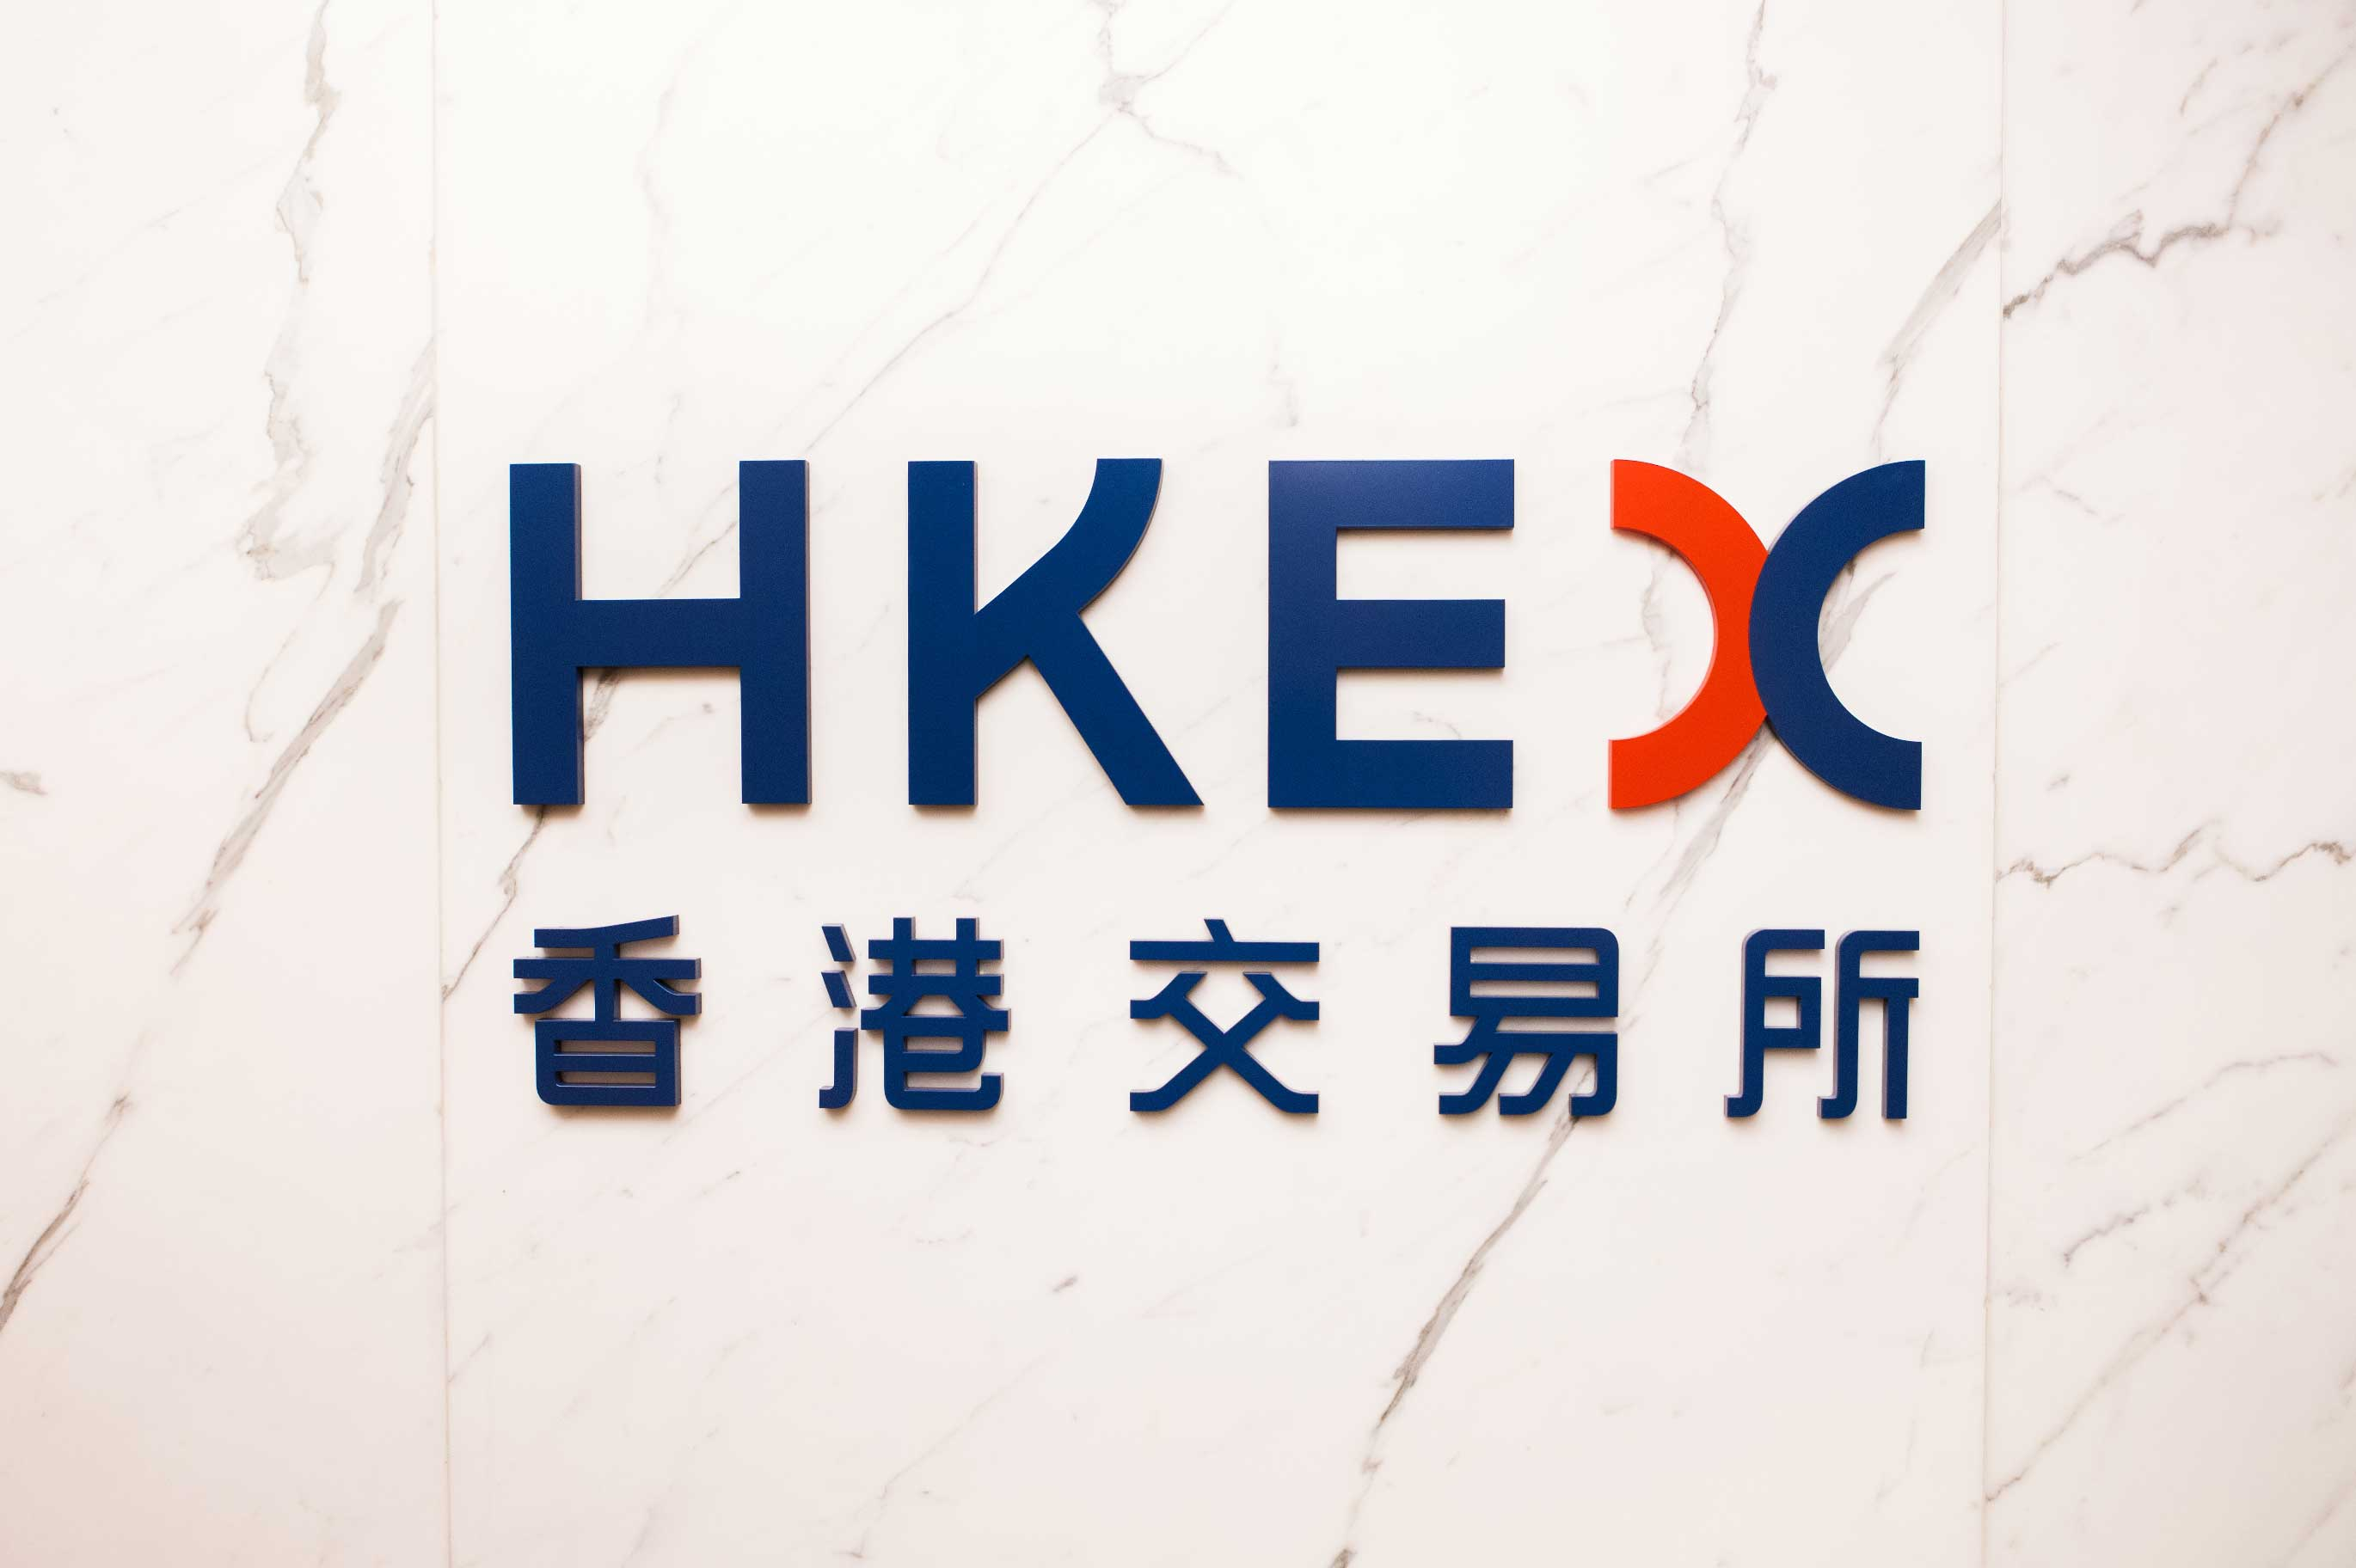 The new look adds a bolder, cleaner, and more contemporary image to HKEX.  The X-mark in the HKEX logo symbolises the connection of East and West and highlights HKEX's ambition to reshape the global market landscape by connecting China with the world.